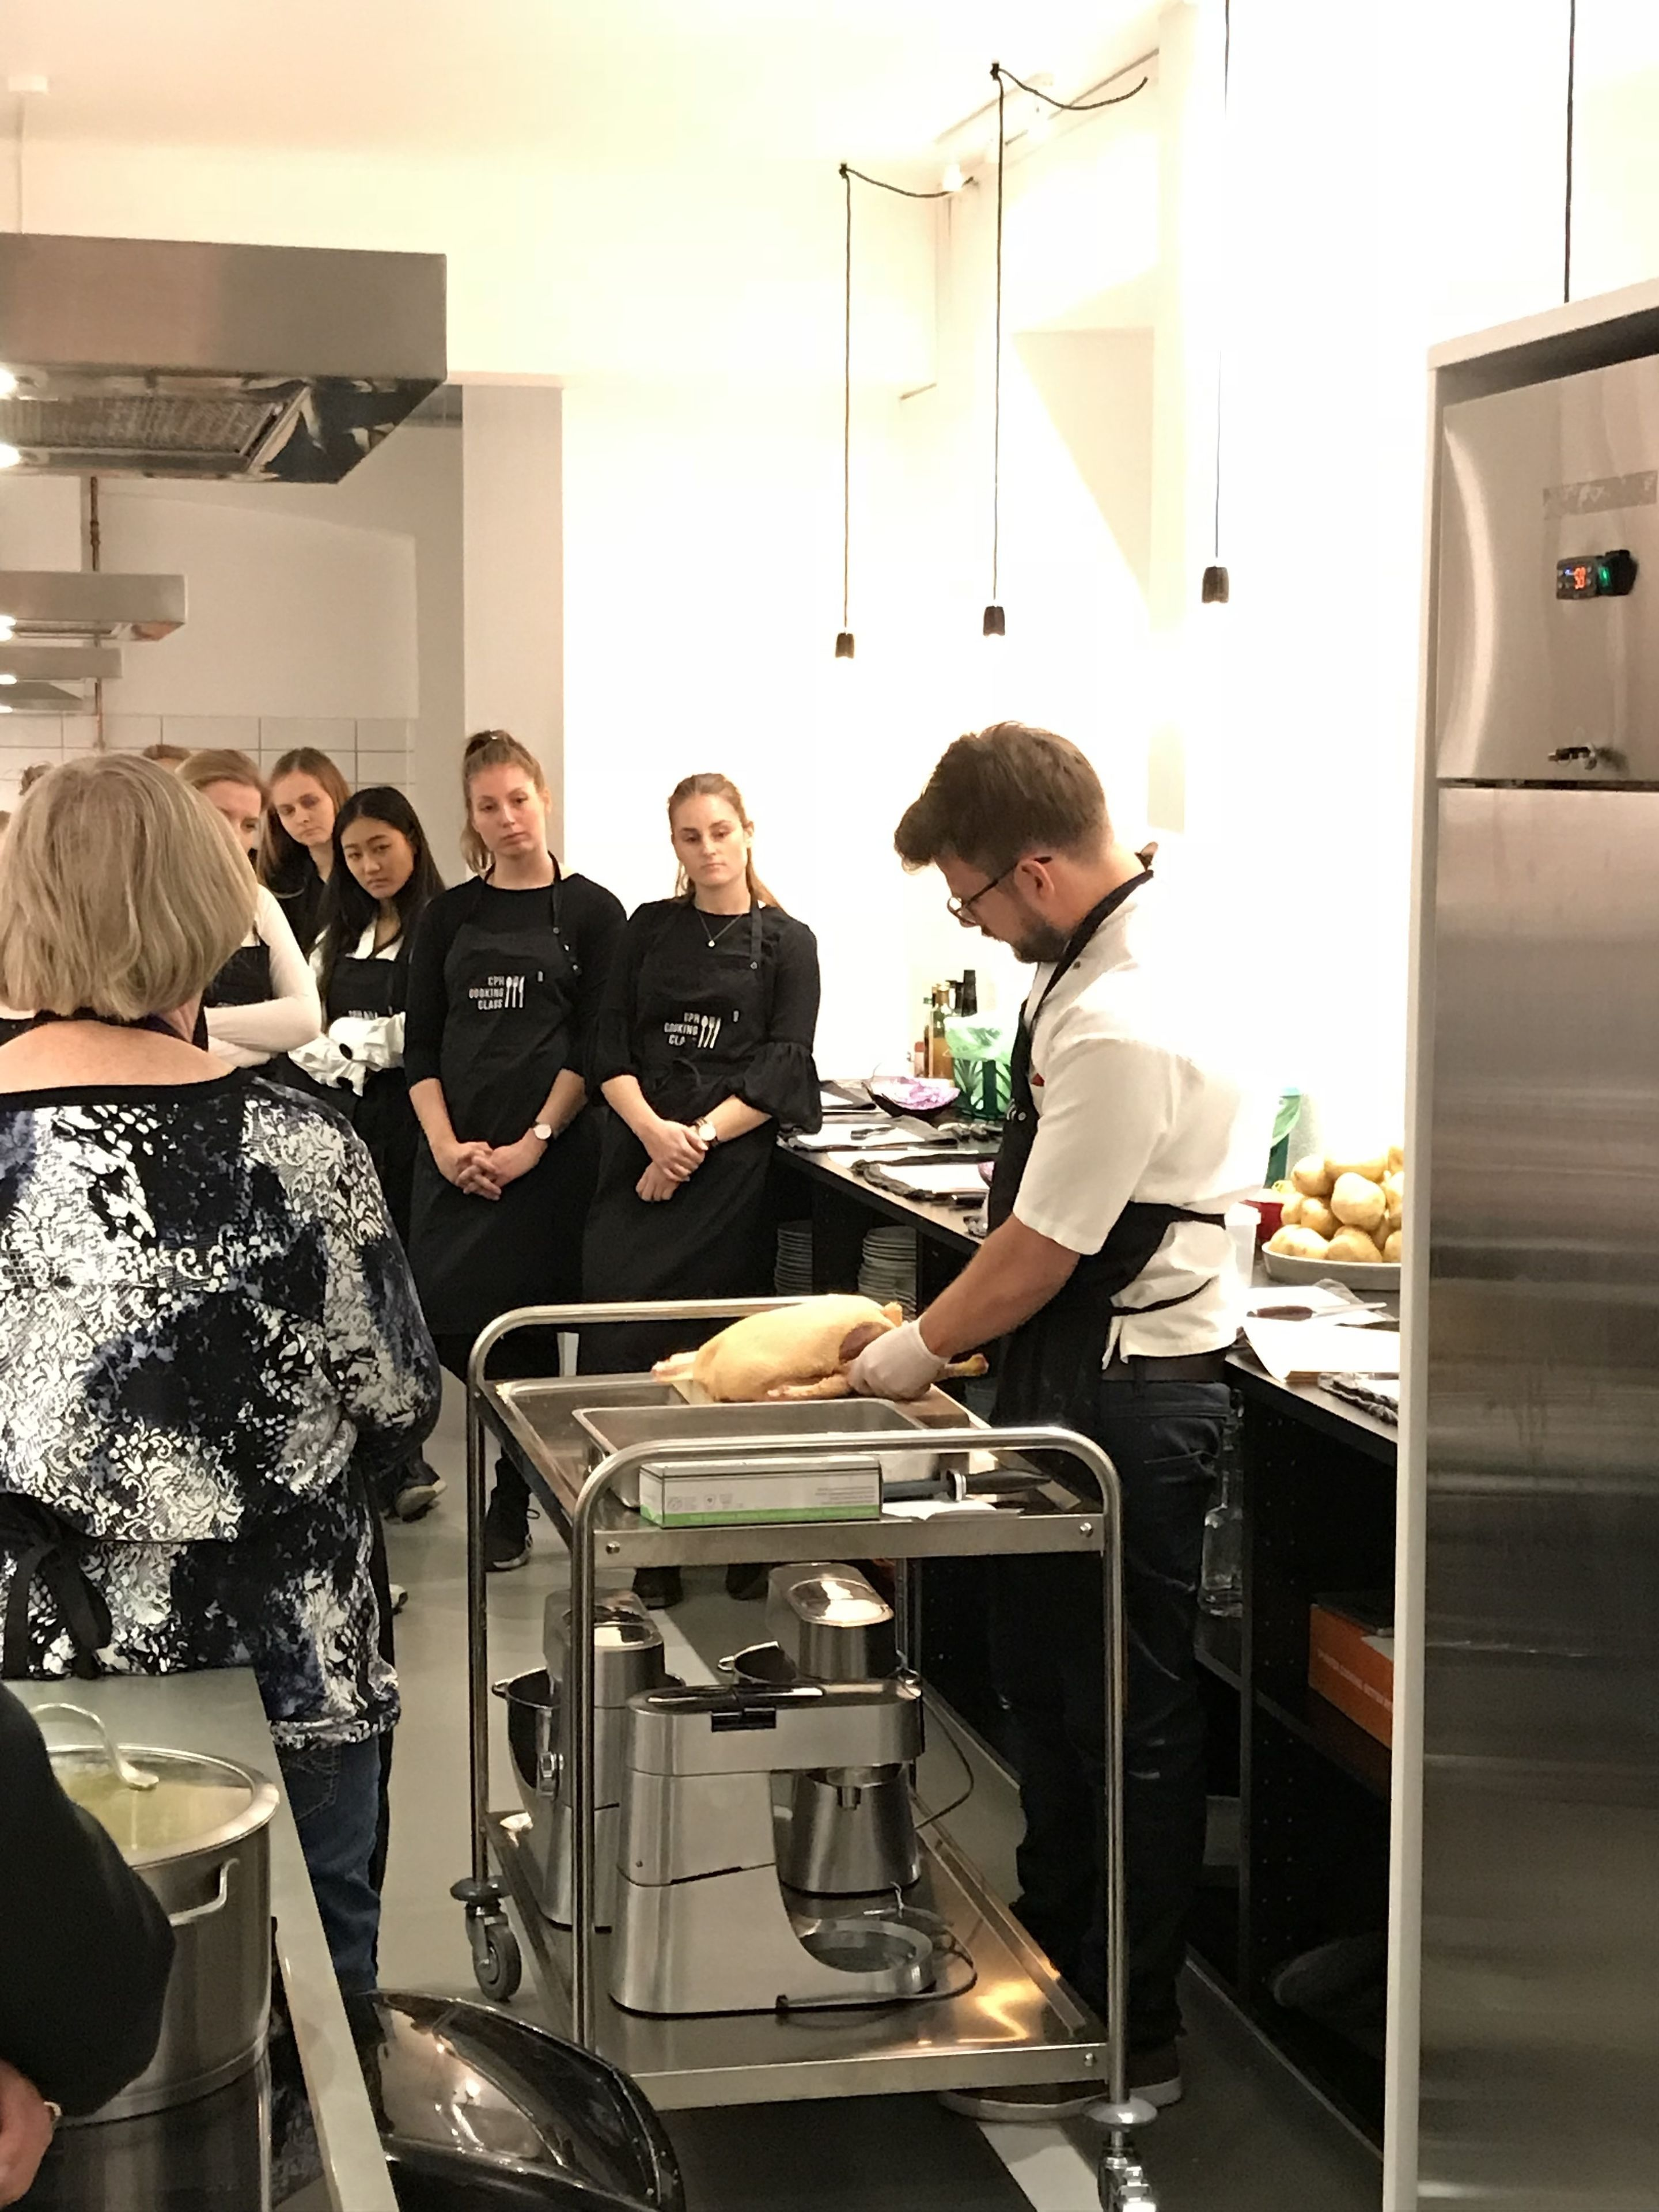 Nordic dinner cooking class in a kitchen